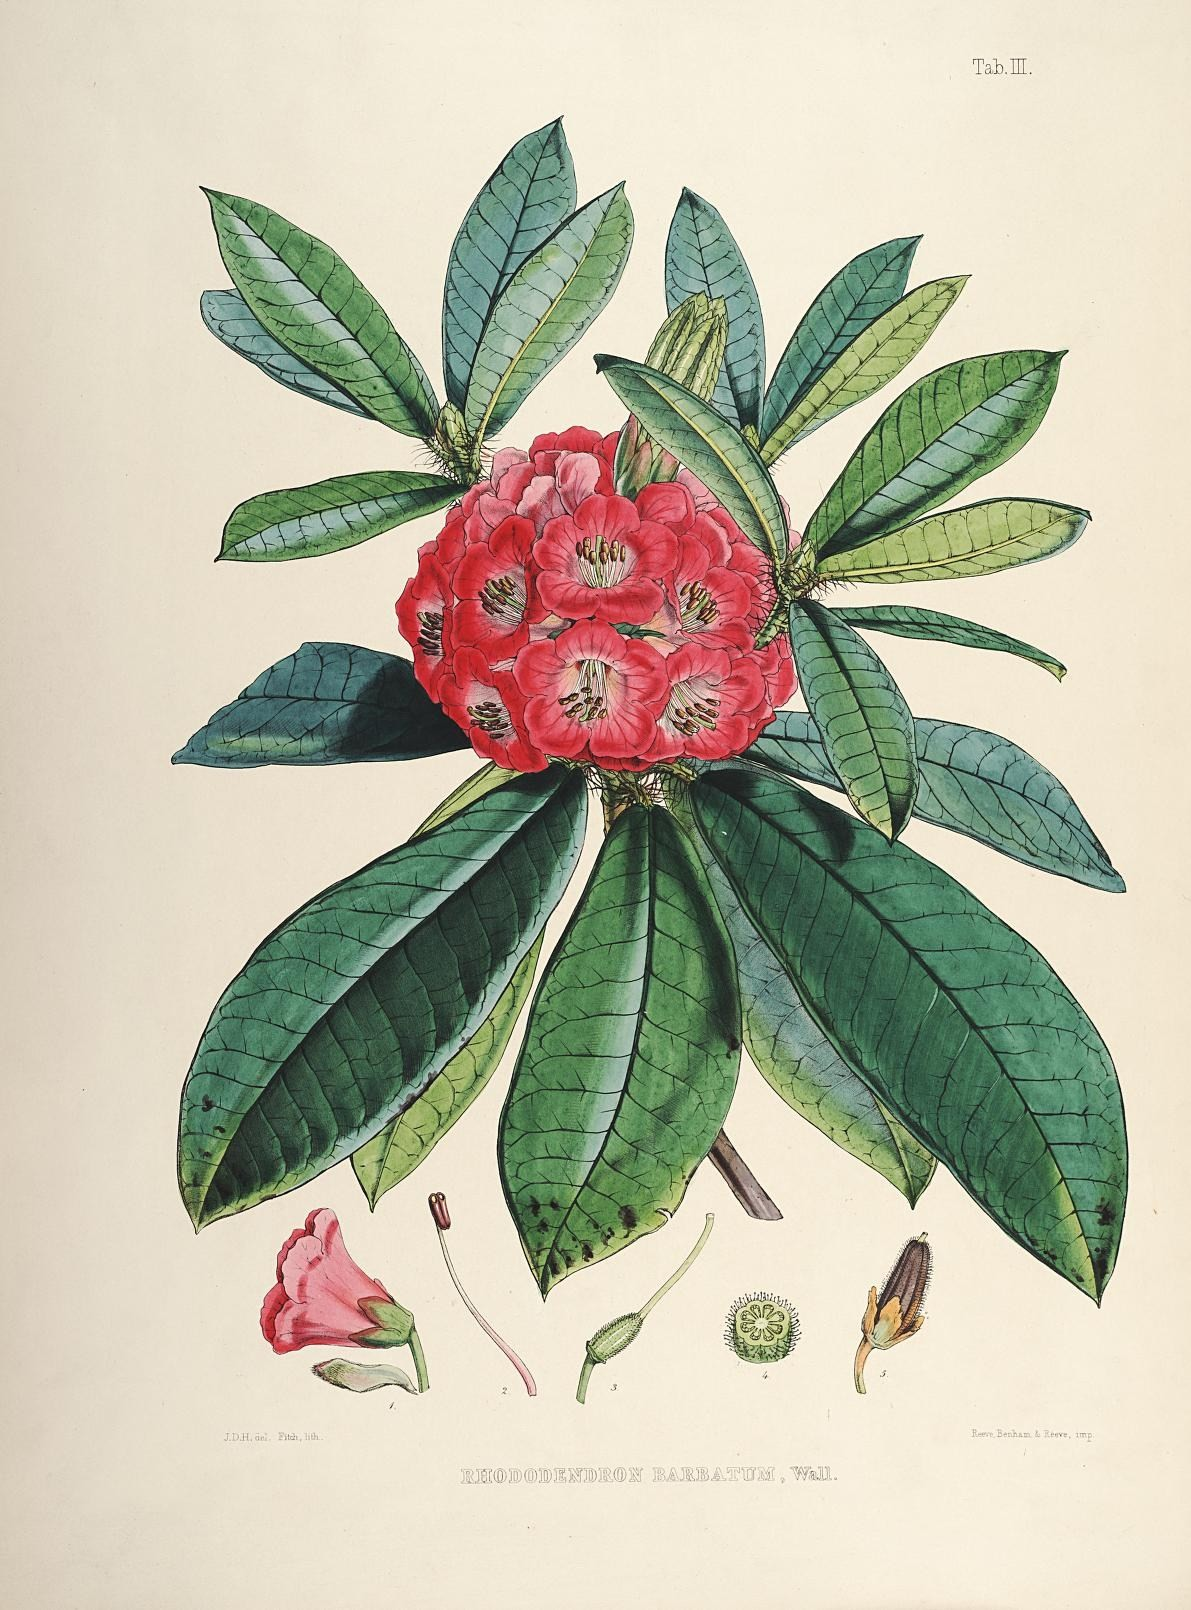 The rhododendrons of Sikkim Himalayas. Photo credit: Biodiversity Heritage Library/Wikimedia Commons [Licensed under CC BY 3.0]